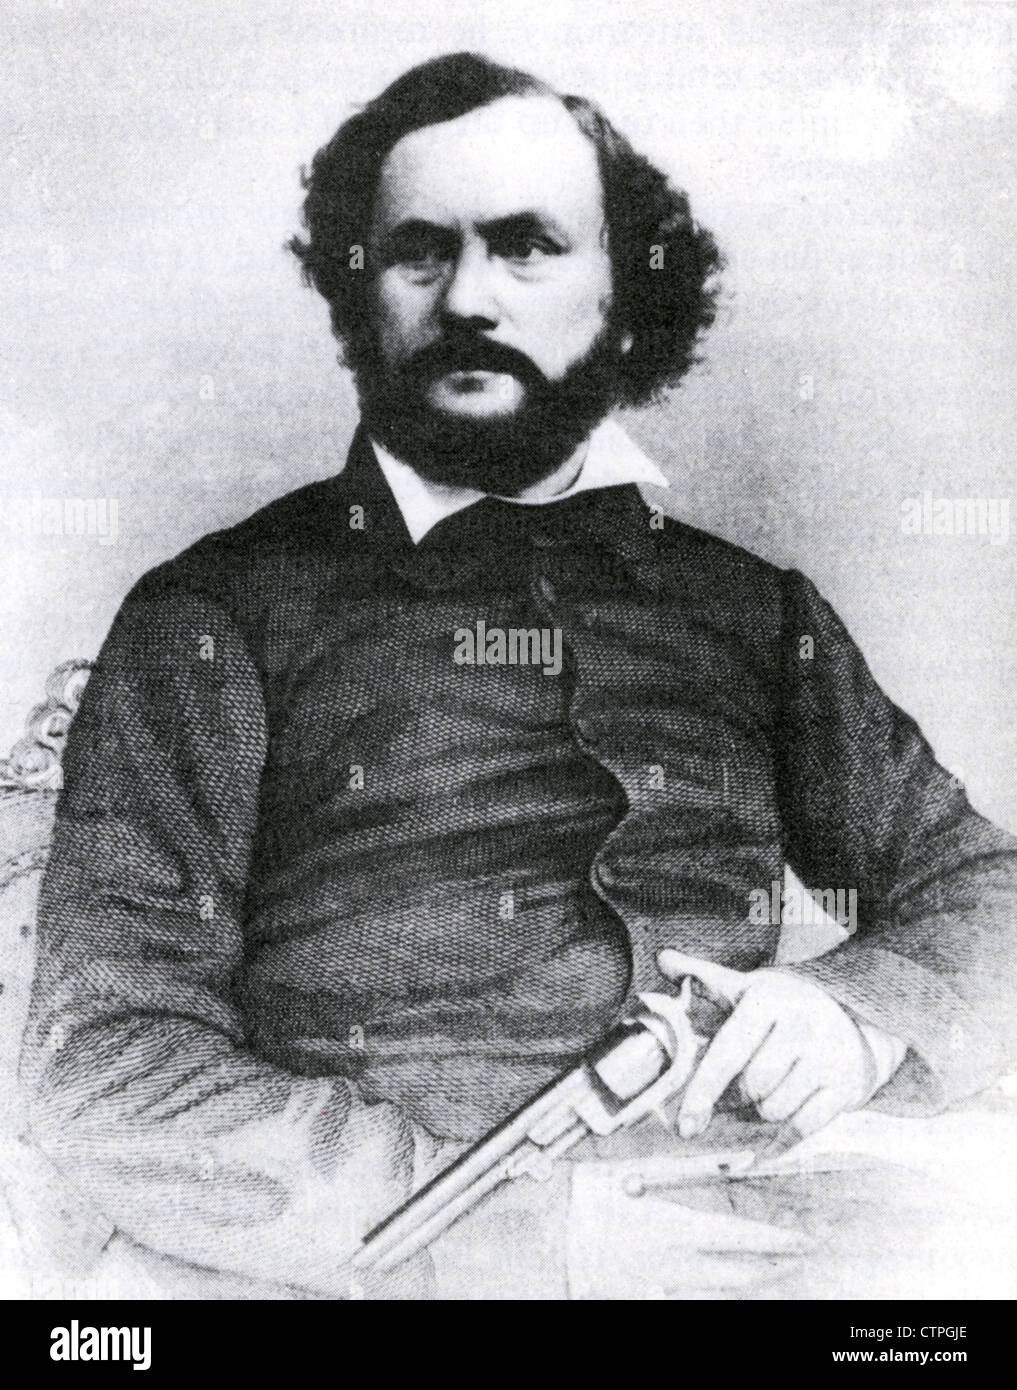 SAMUEL COLT (1814-1862) US inventor and engineer who founded Colt's Patent Firearms Manufacturing Company in - Stock Image